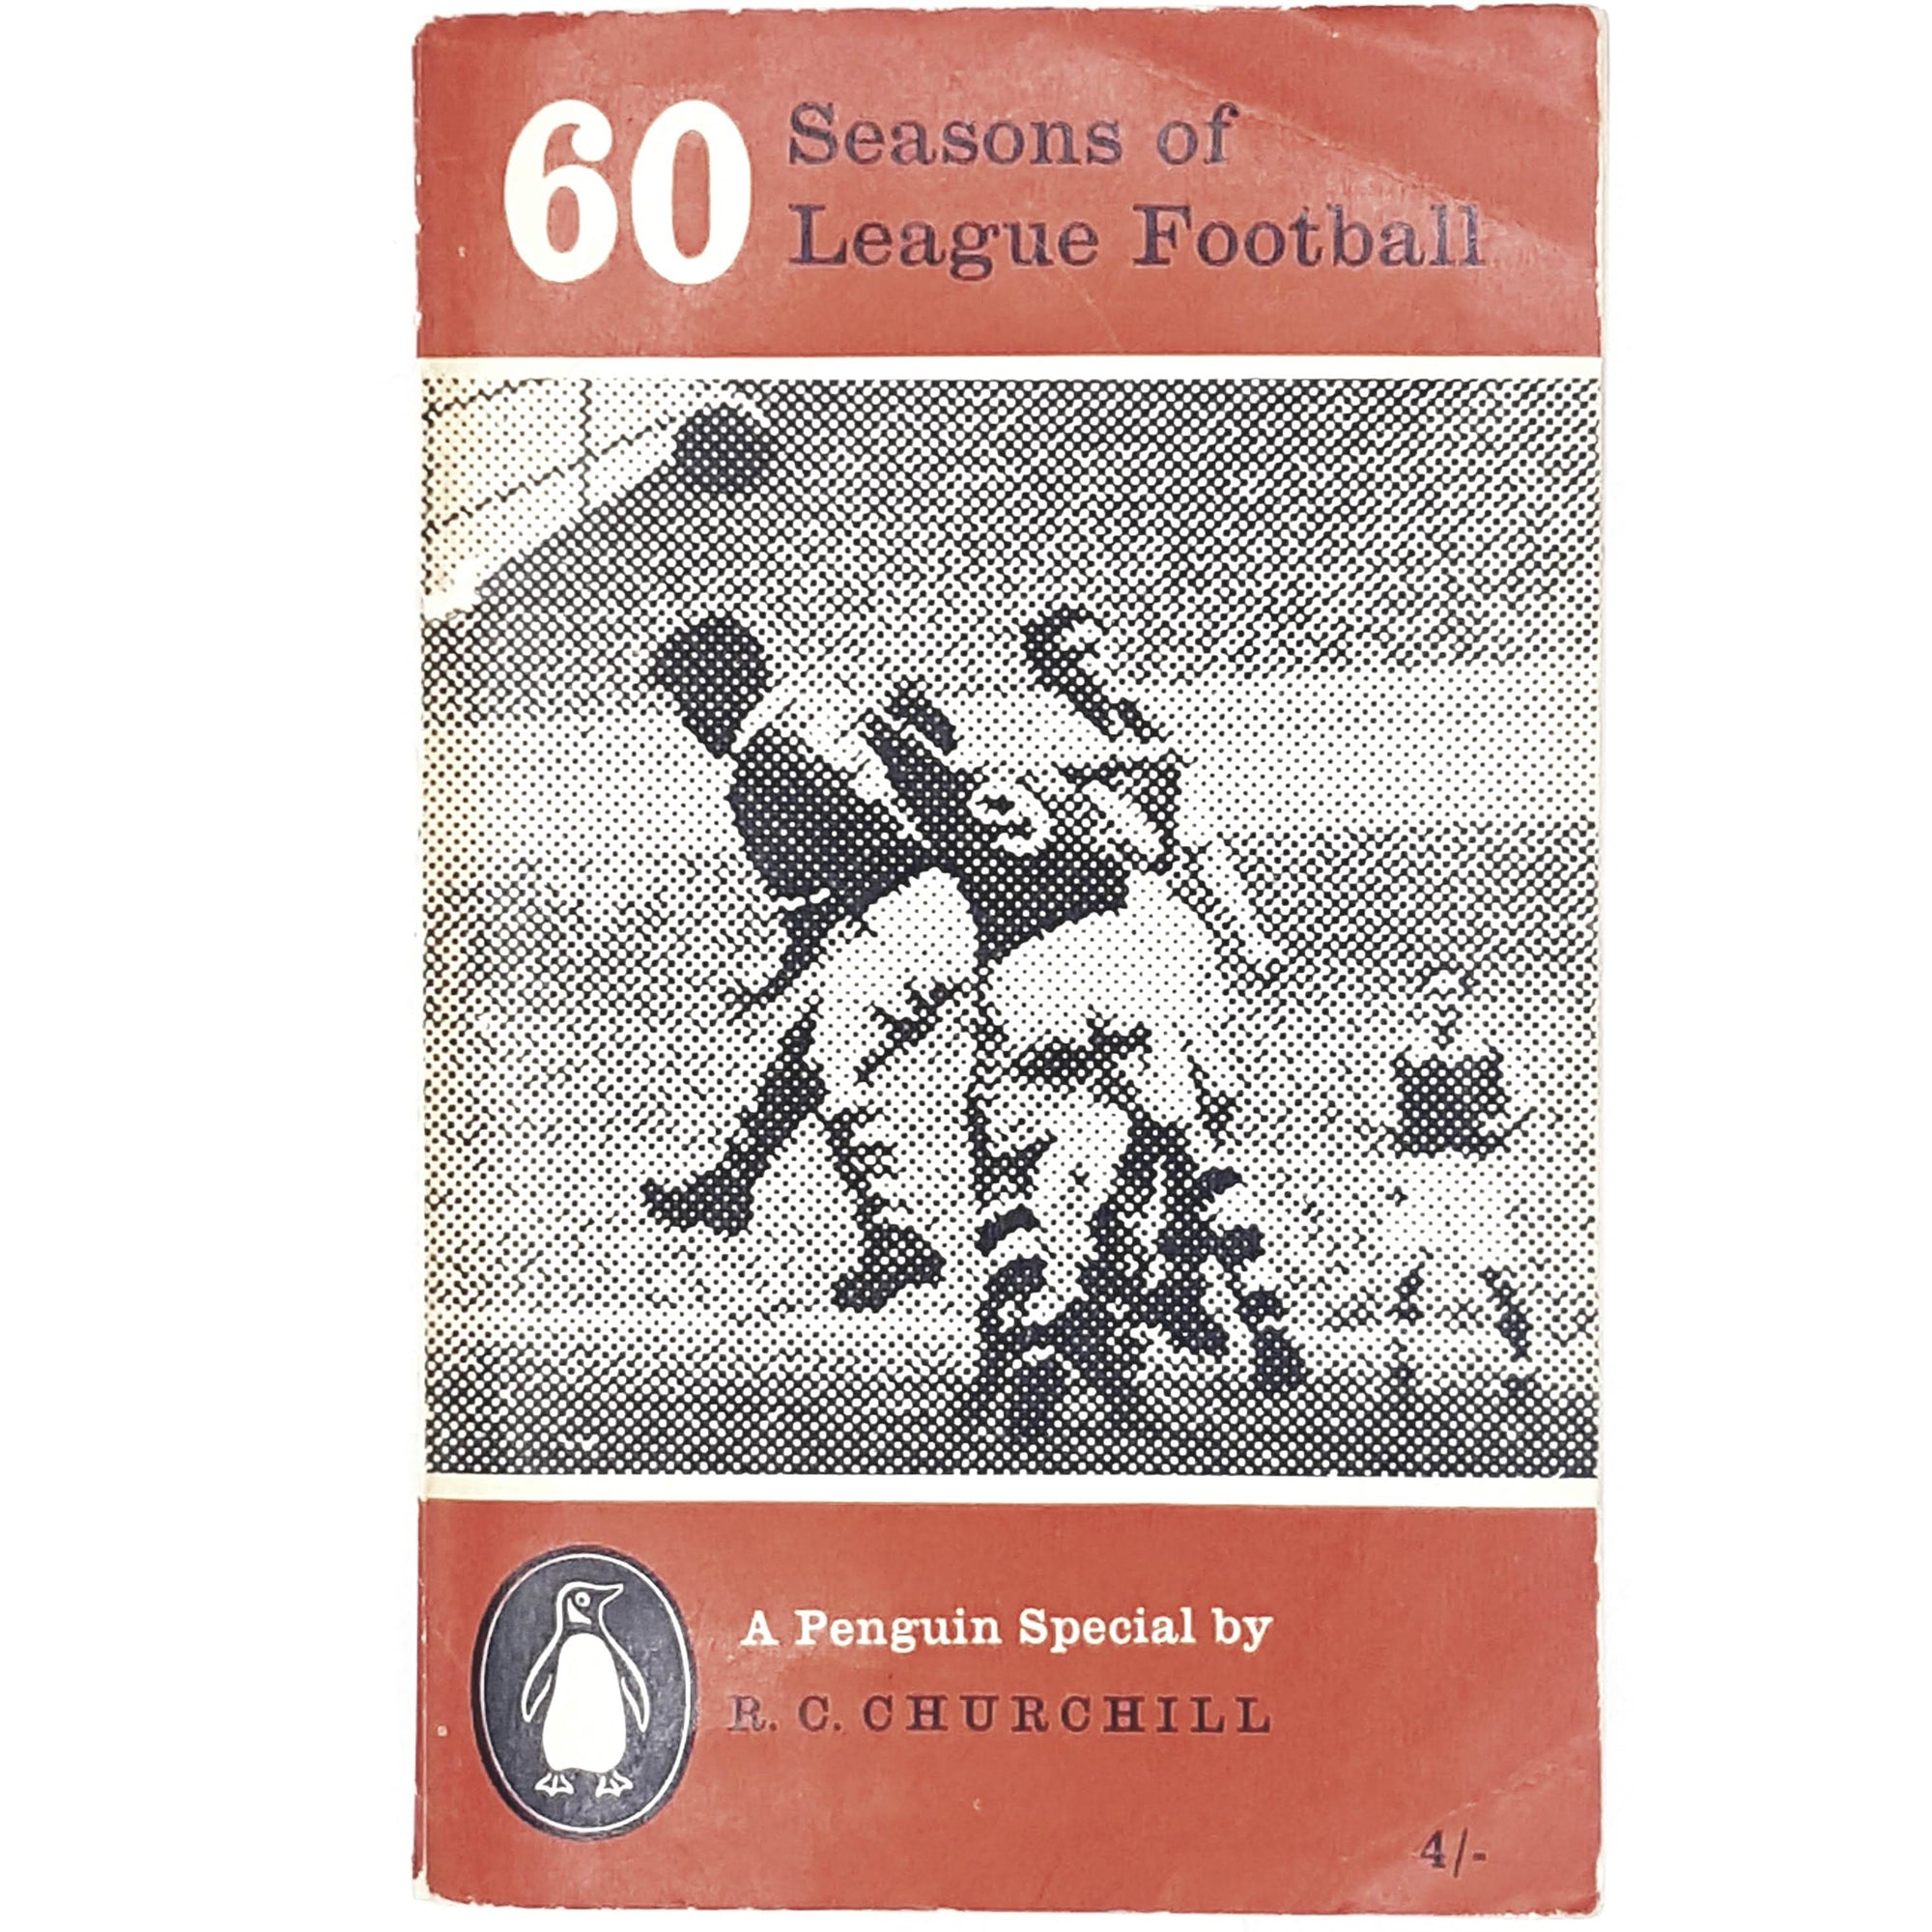 First Edition 60 Seasons of League Football 1958